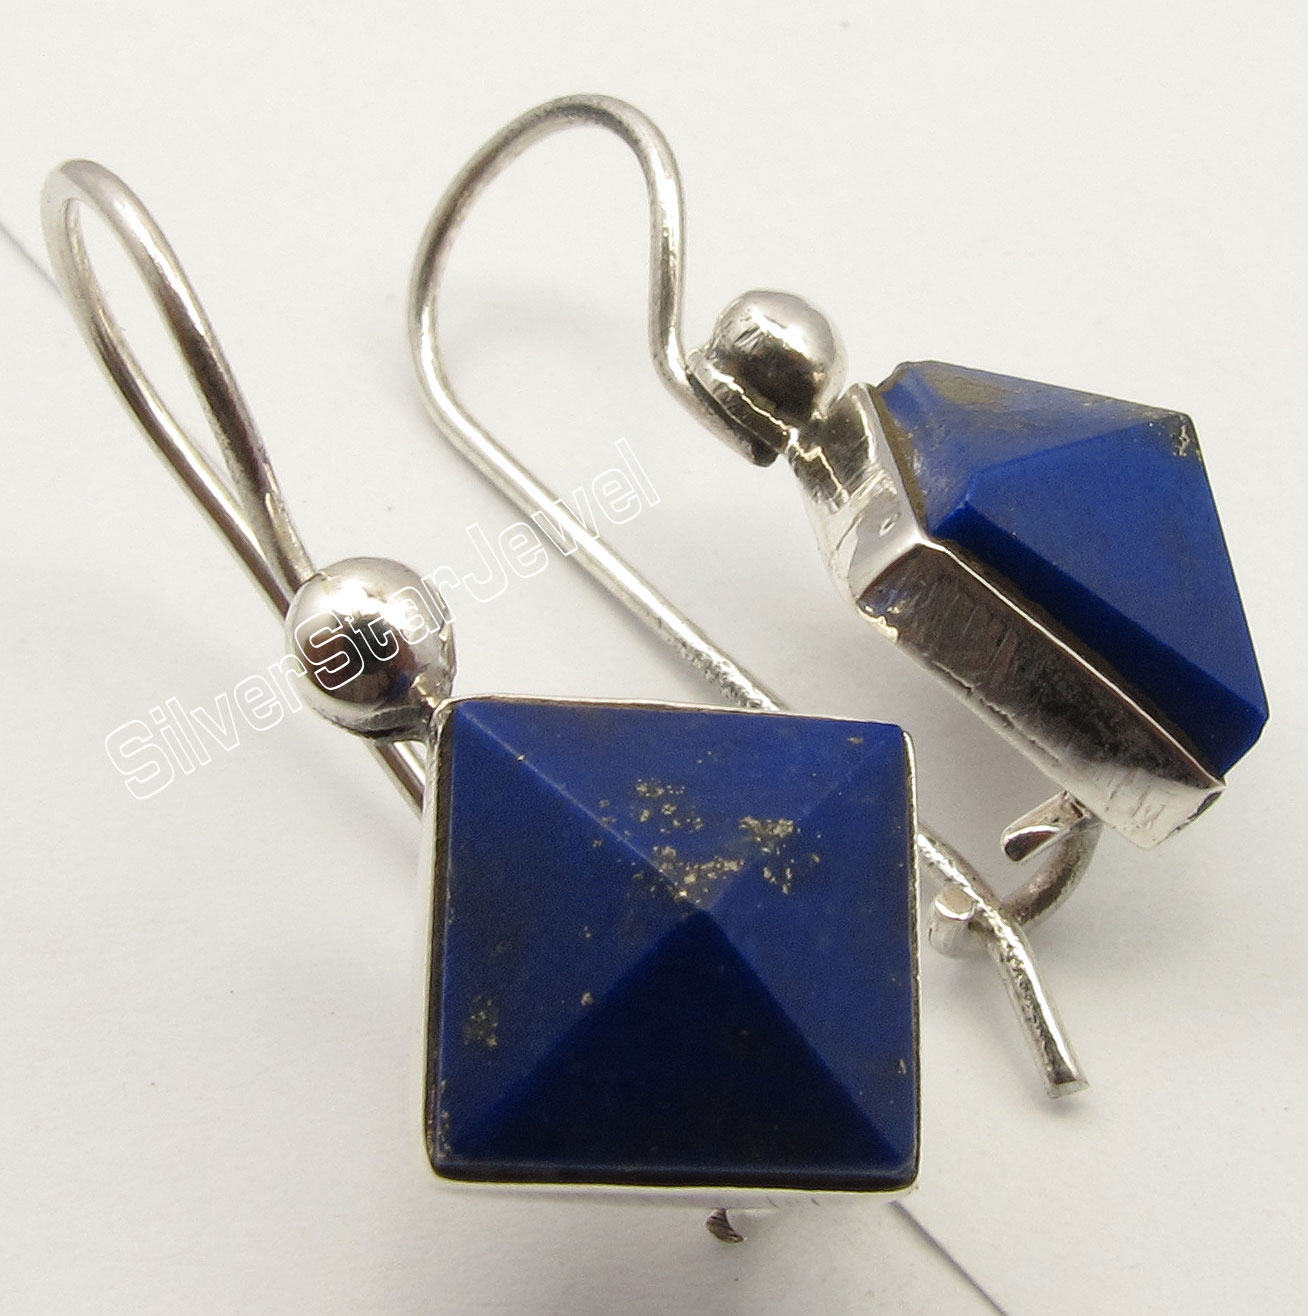 Chanti International Silver Exclusive LAPIS LAZULI MADE IN INDIA Pyramid Earrings 1 inches NEW